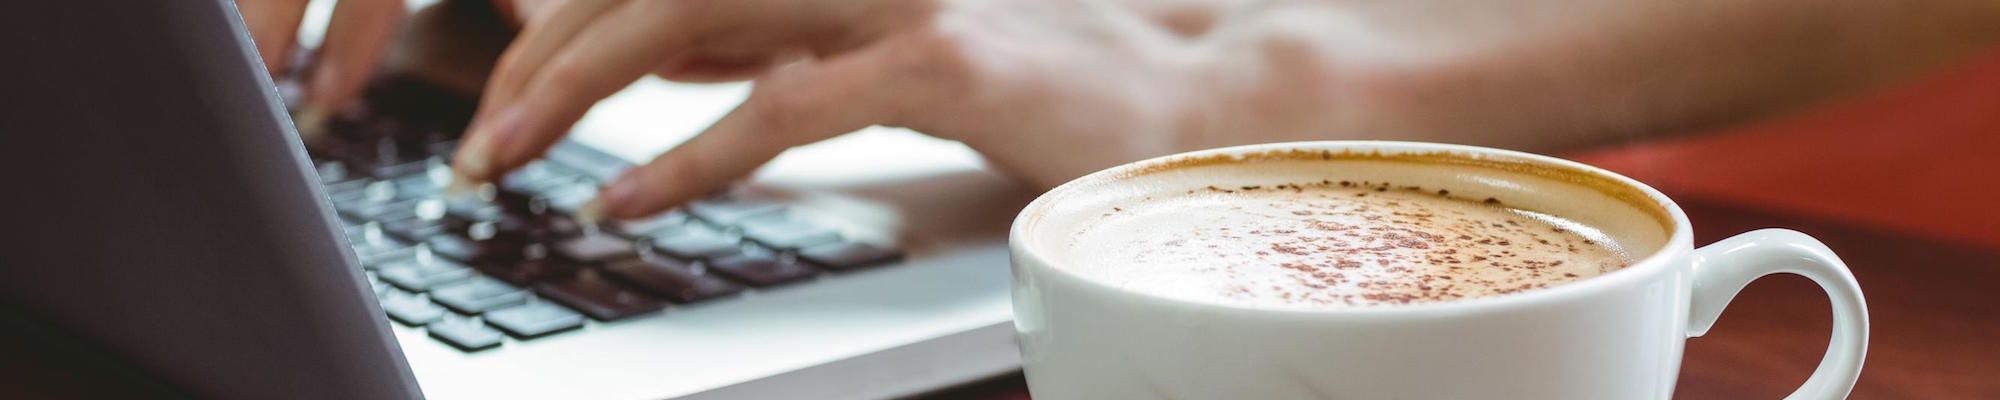 Hands on a laptop and a cup of coffee